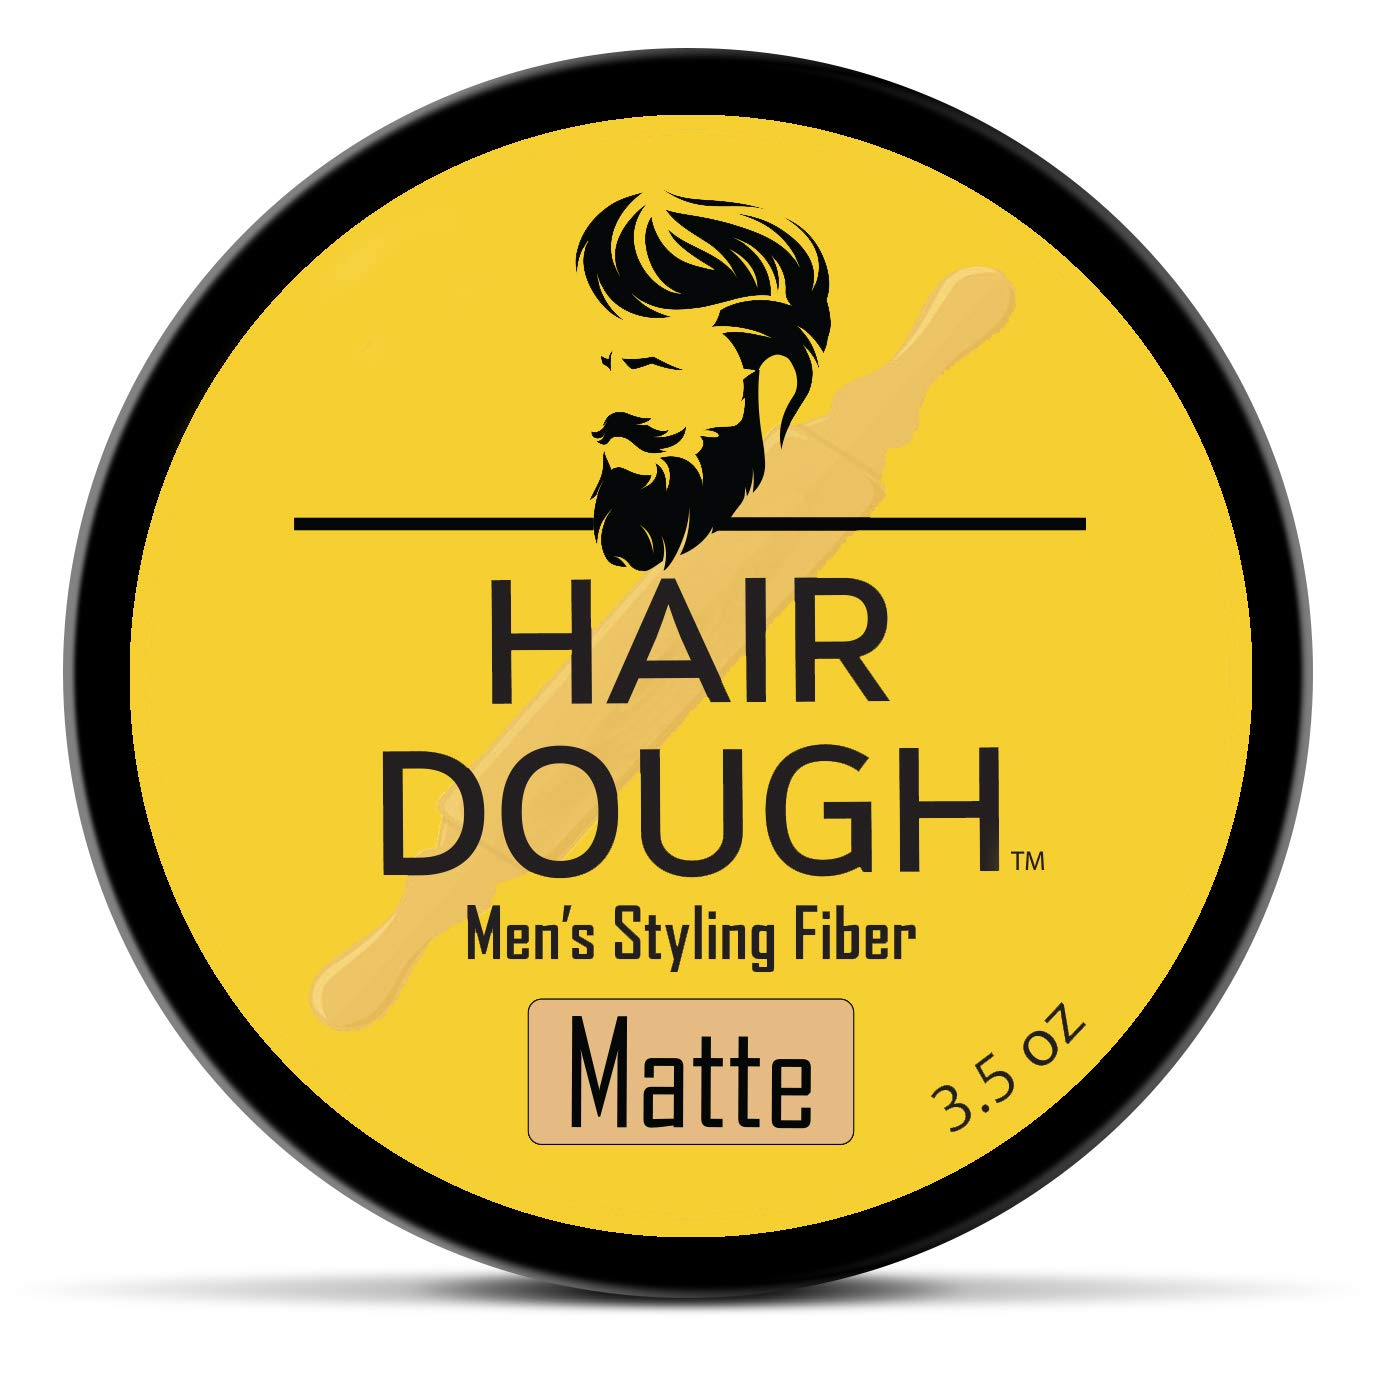 Hair Dough Styling Clay For Men - Matte Finish Molding Hair Wax Paste - Strong Hold Without The Shine by Hair Dough